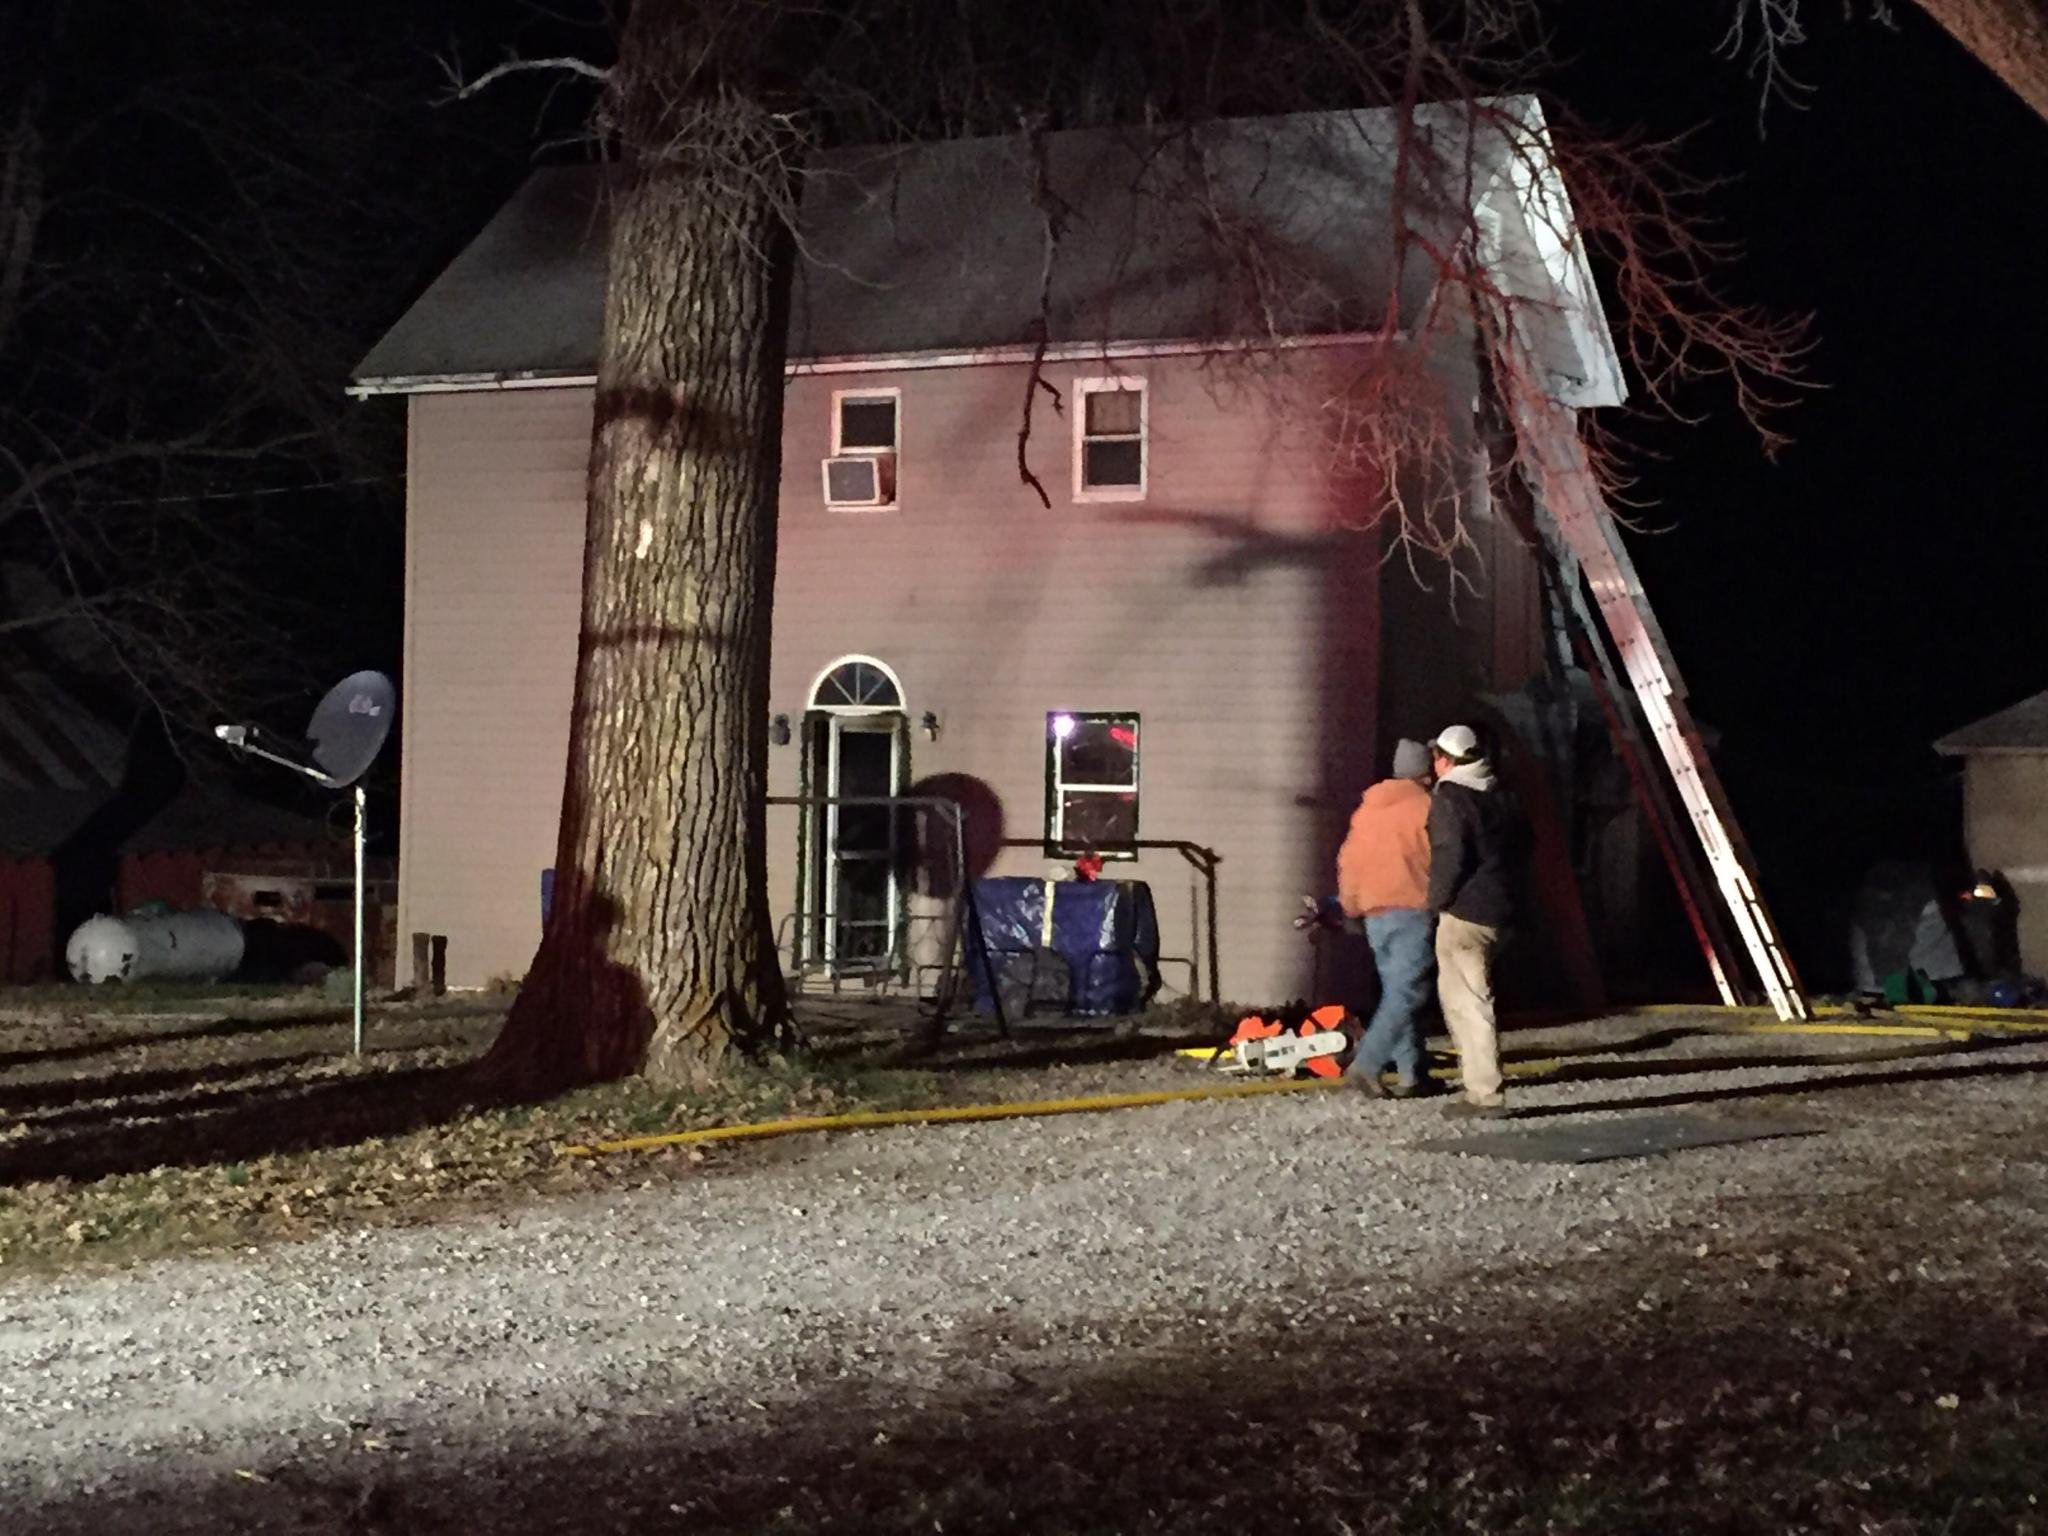 Fire damages home in Sutter, Illinois